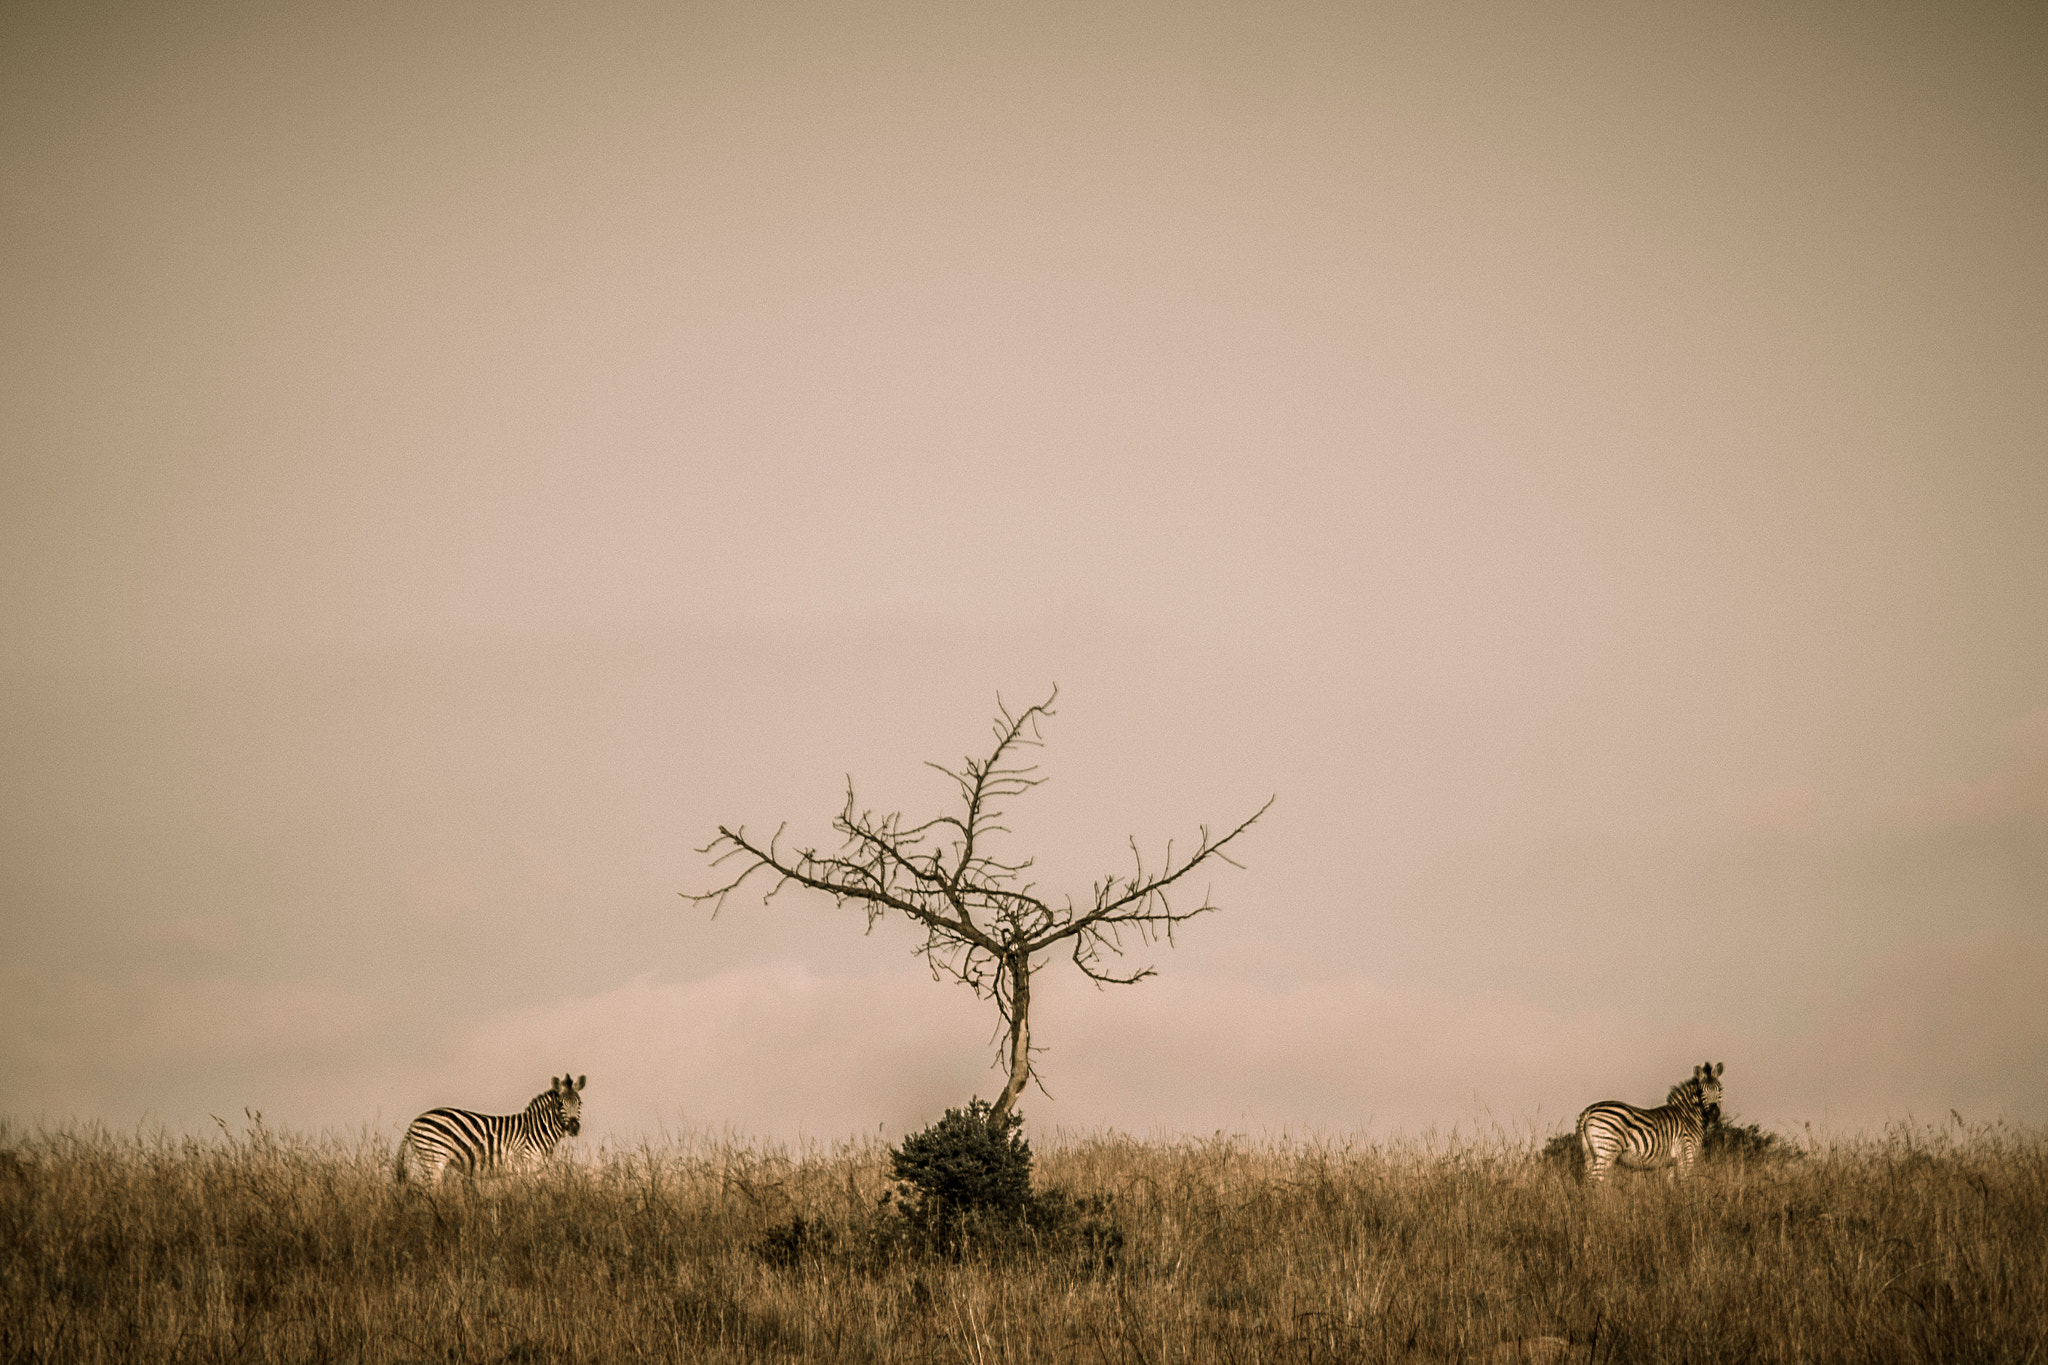 Photograph Zebras by Dylan Cousins on 500px